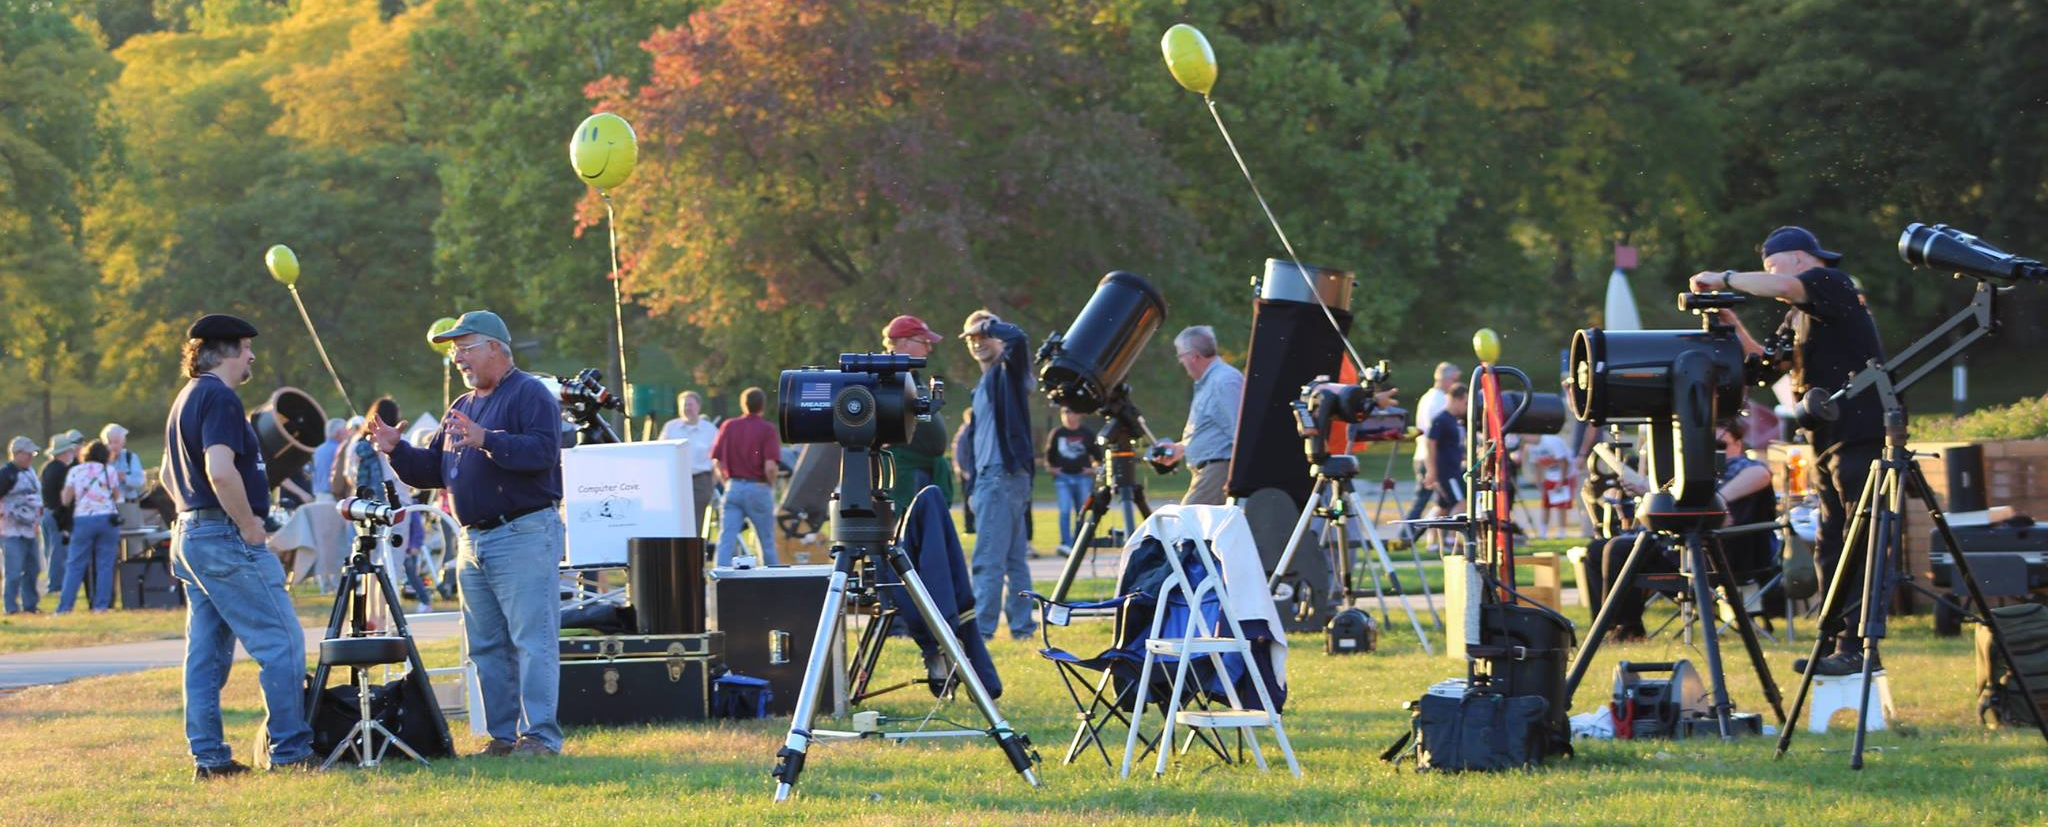 Great Lakes Association of Astronomy Clubs